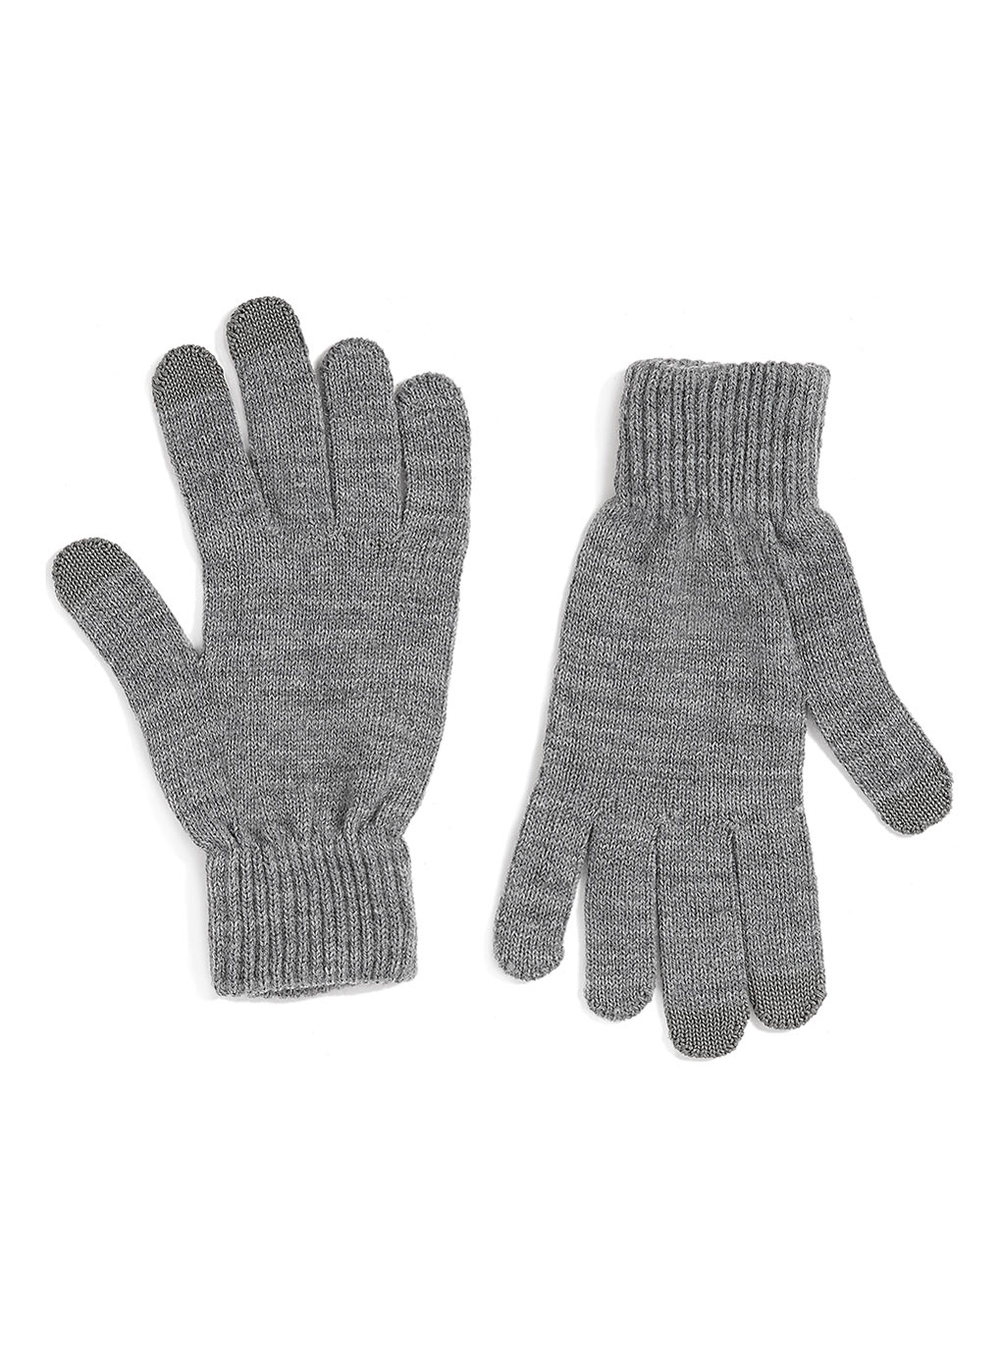 Mens leather gloves topman - Grey Touchscreen Gloves Was 12 Now 9 60